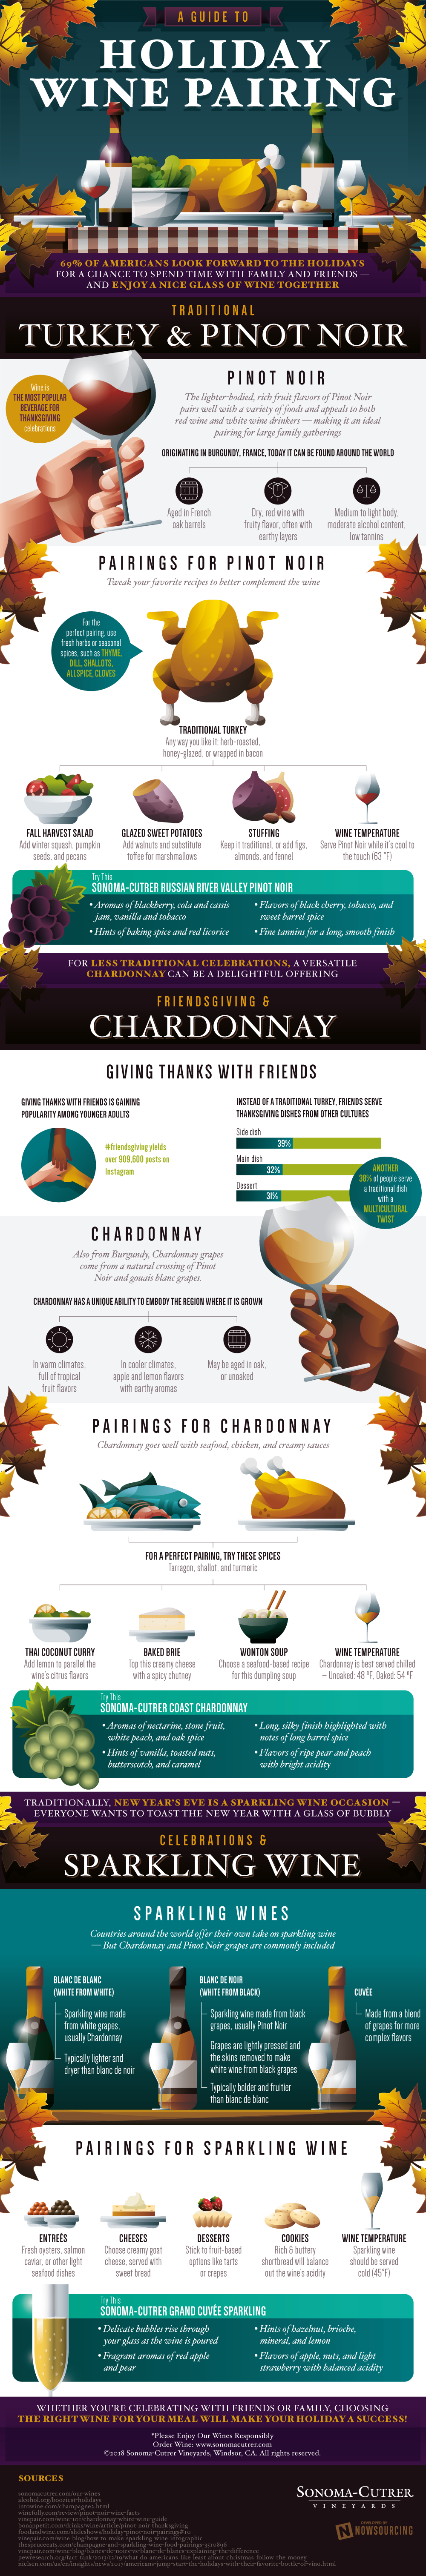 A Holiday Menu Inspired by Wine - Infographic